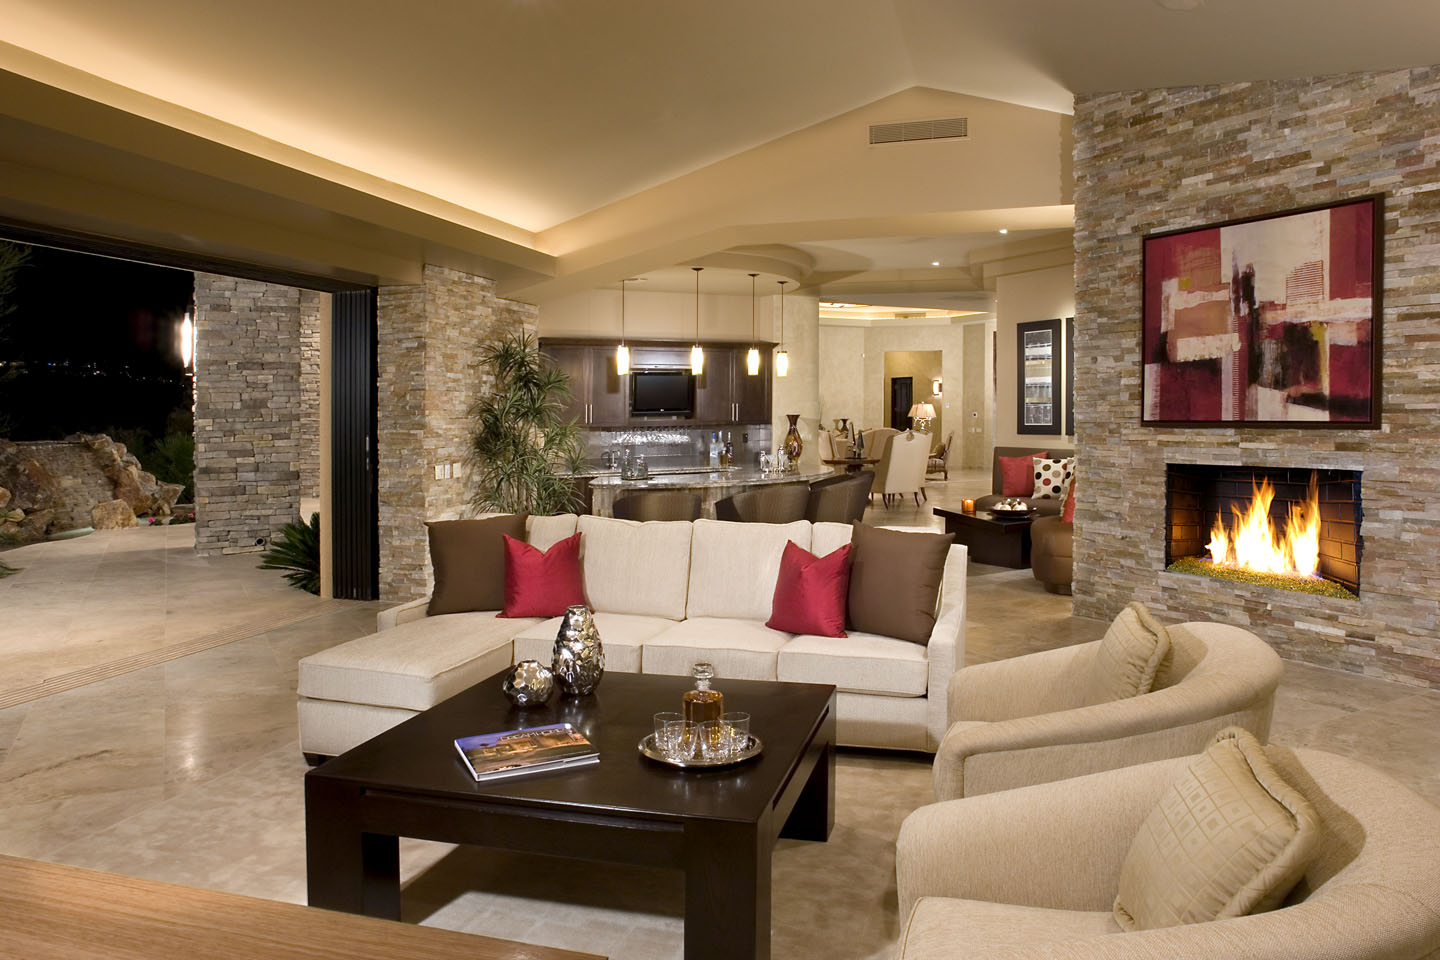 Rock Your Home With Stone Interior Accents: images of home interior